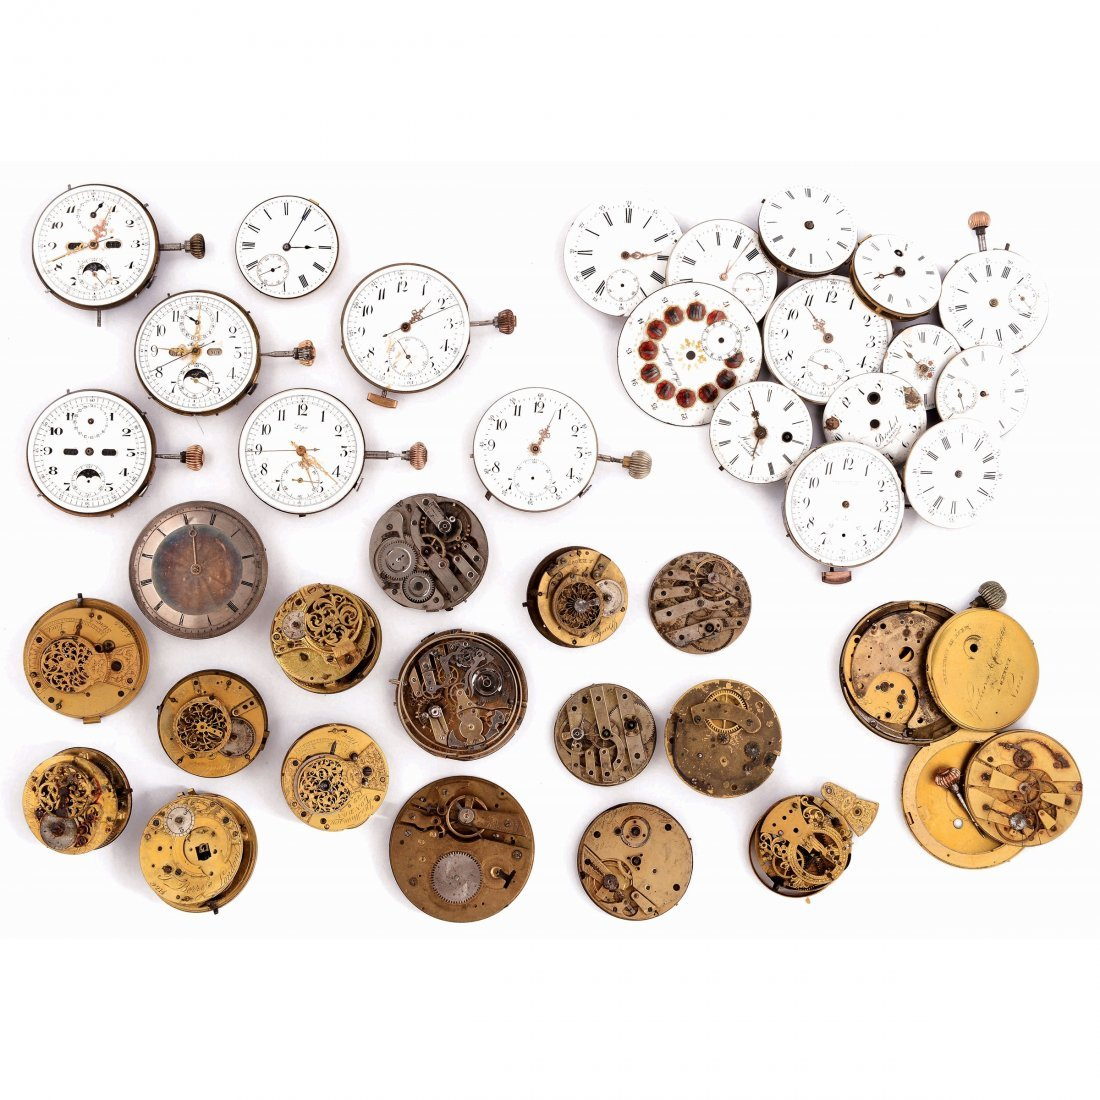 A Lot of pocket watch mechanisms, 18th-20th century